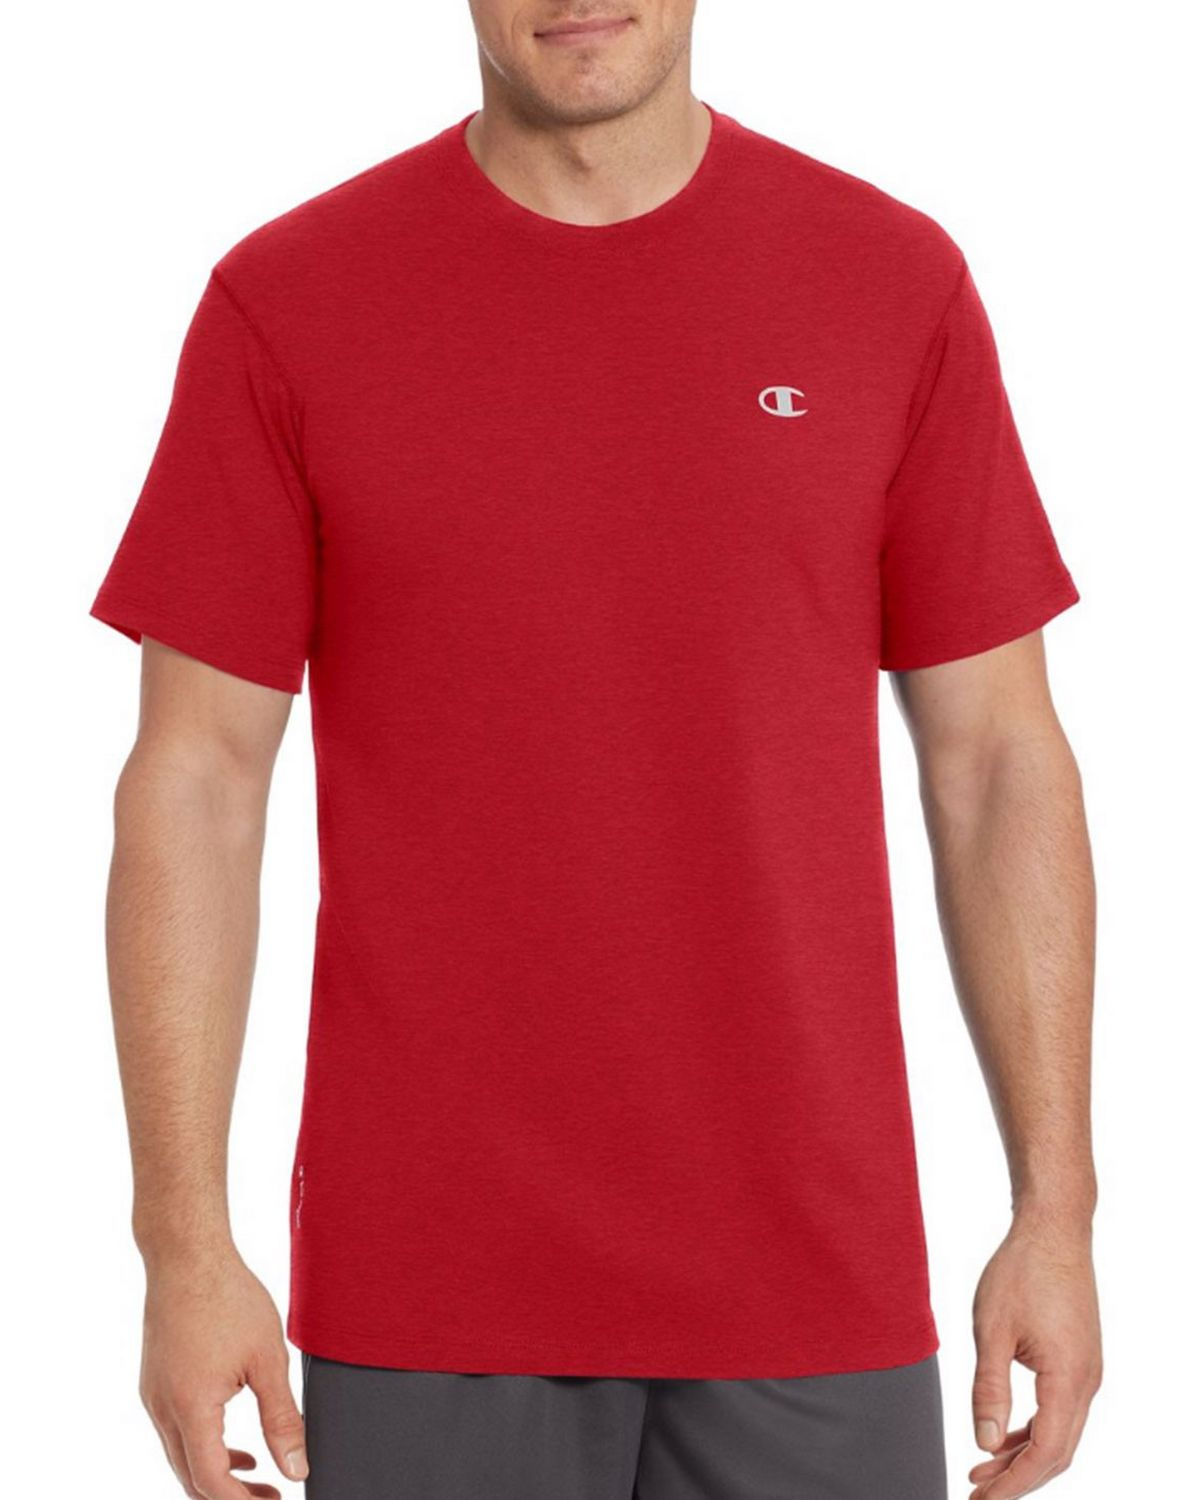 Champion T0351 Vapor Mens Cotton Tee - Granite Heather - S T0351